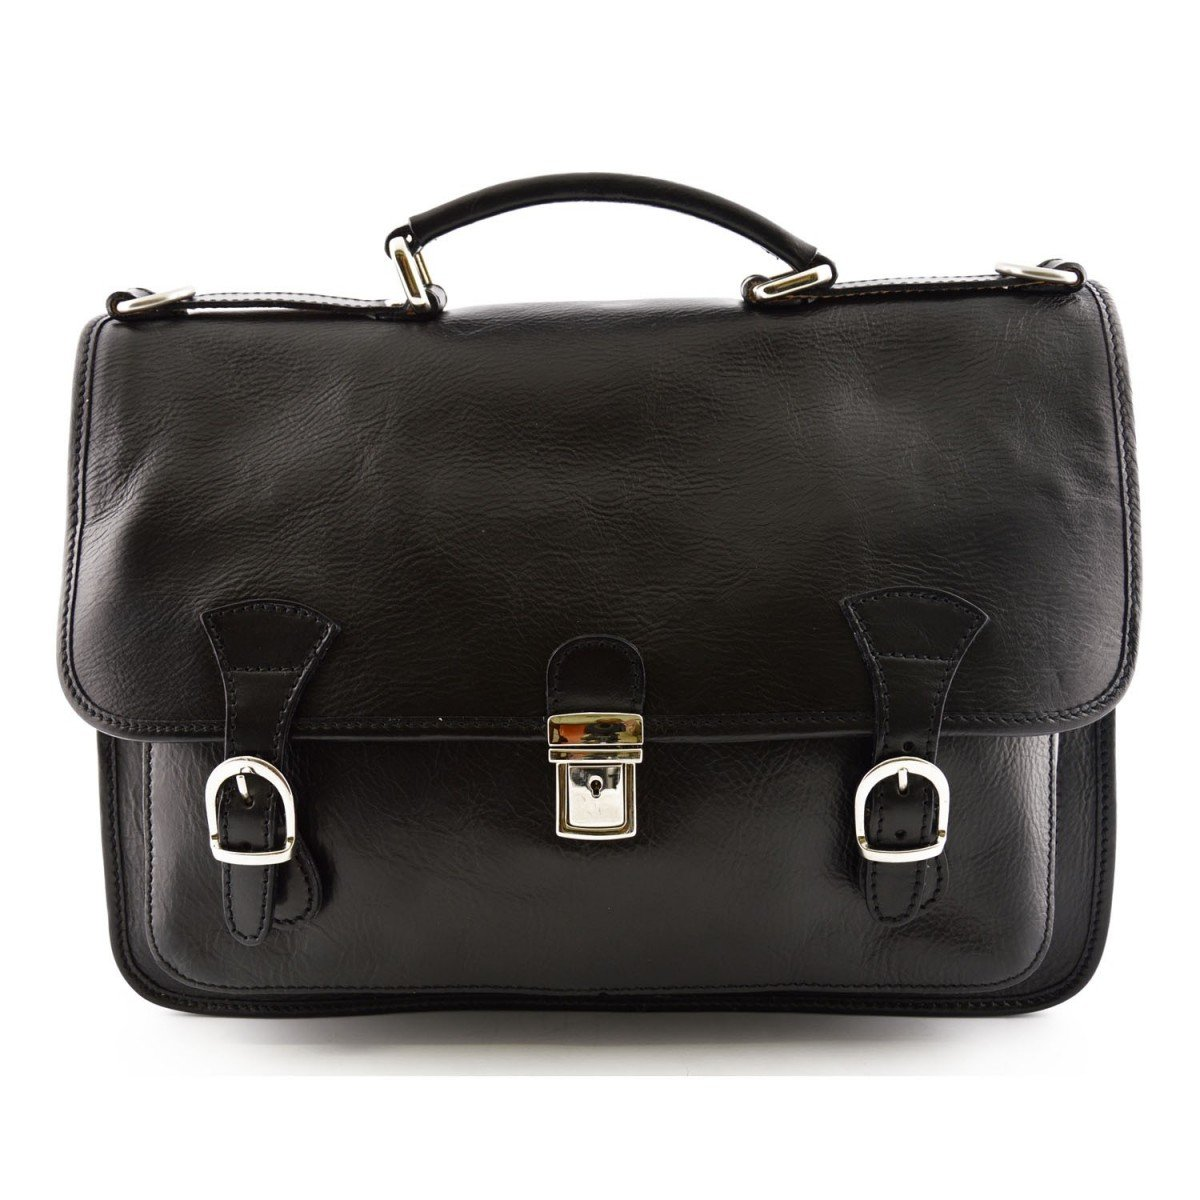 Made In Italy Leather Business Bag Color Black - Business Bag   B016XIYU12